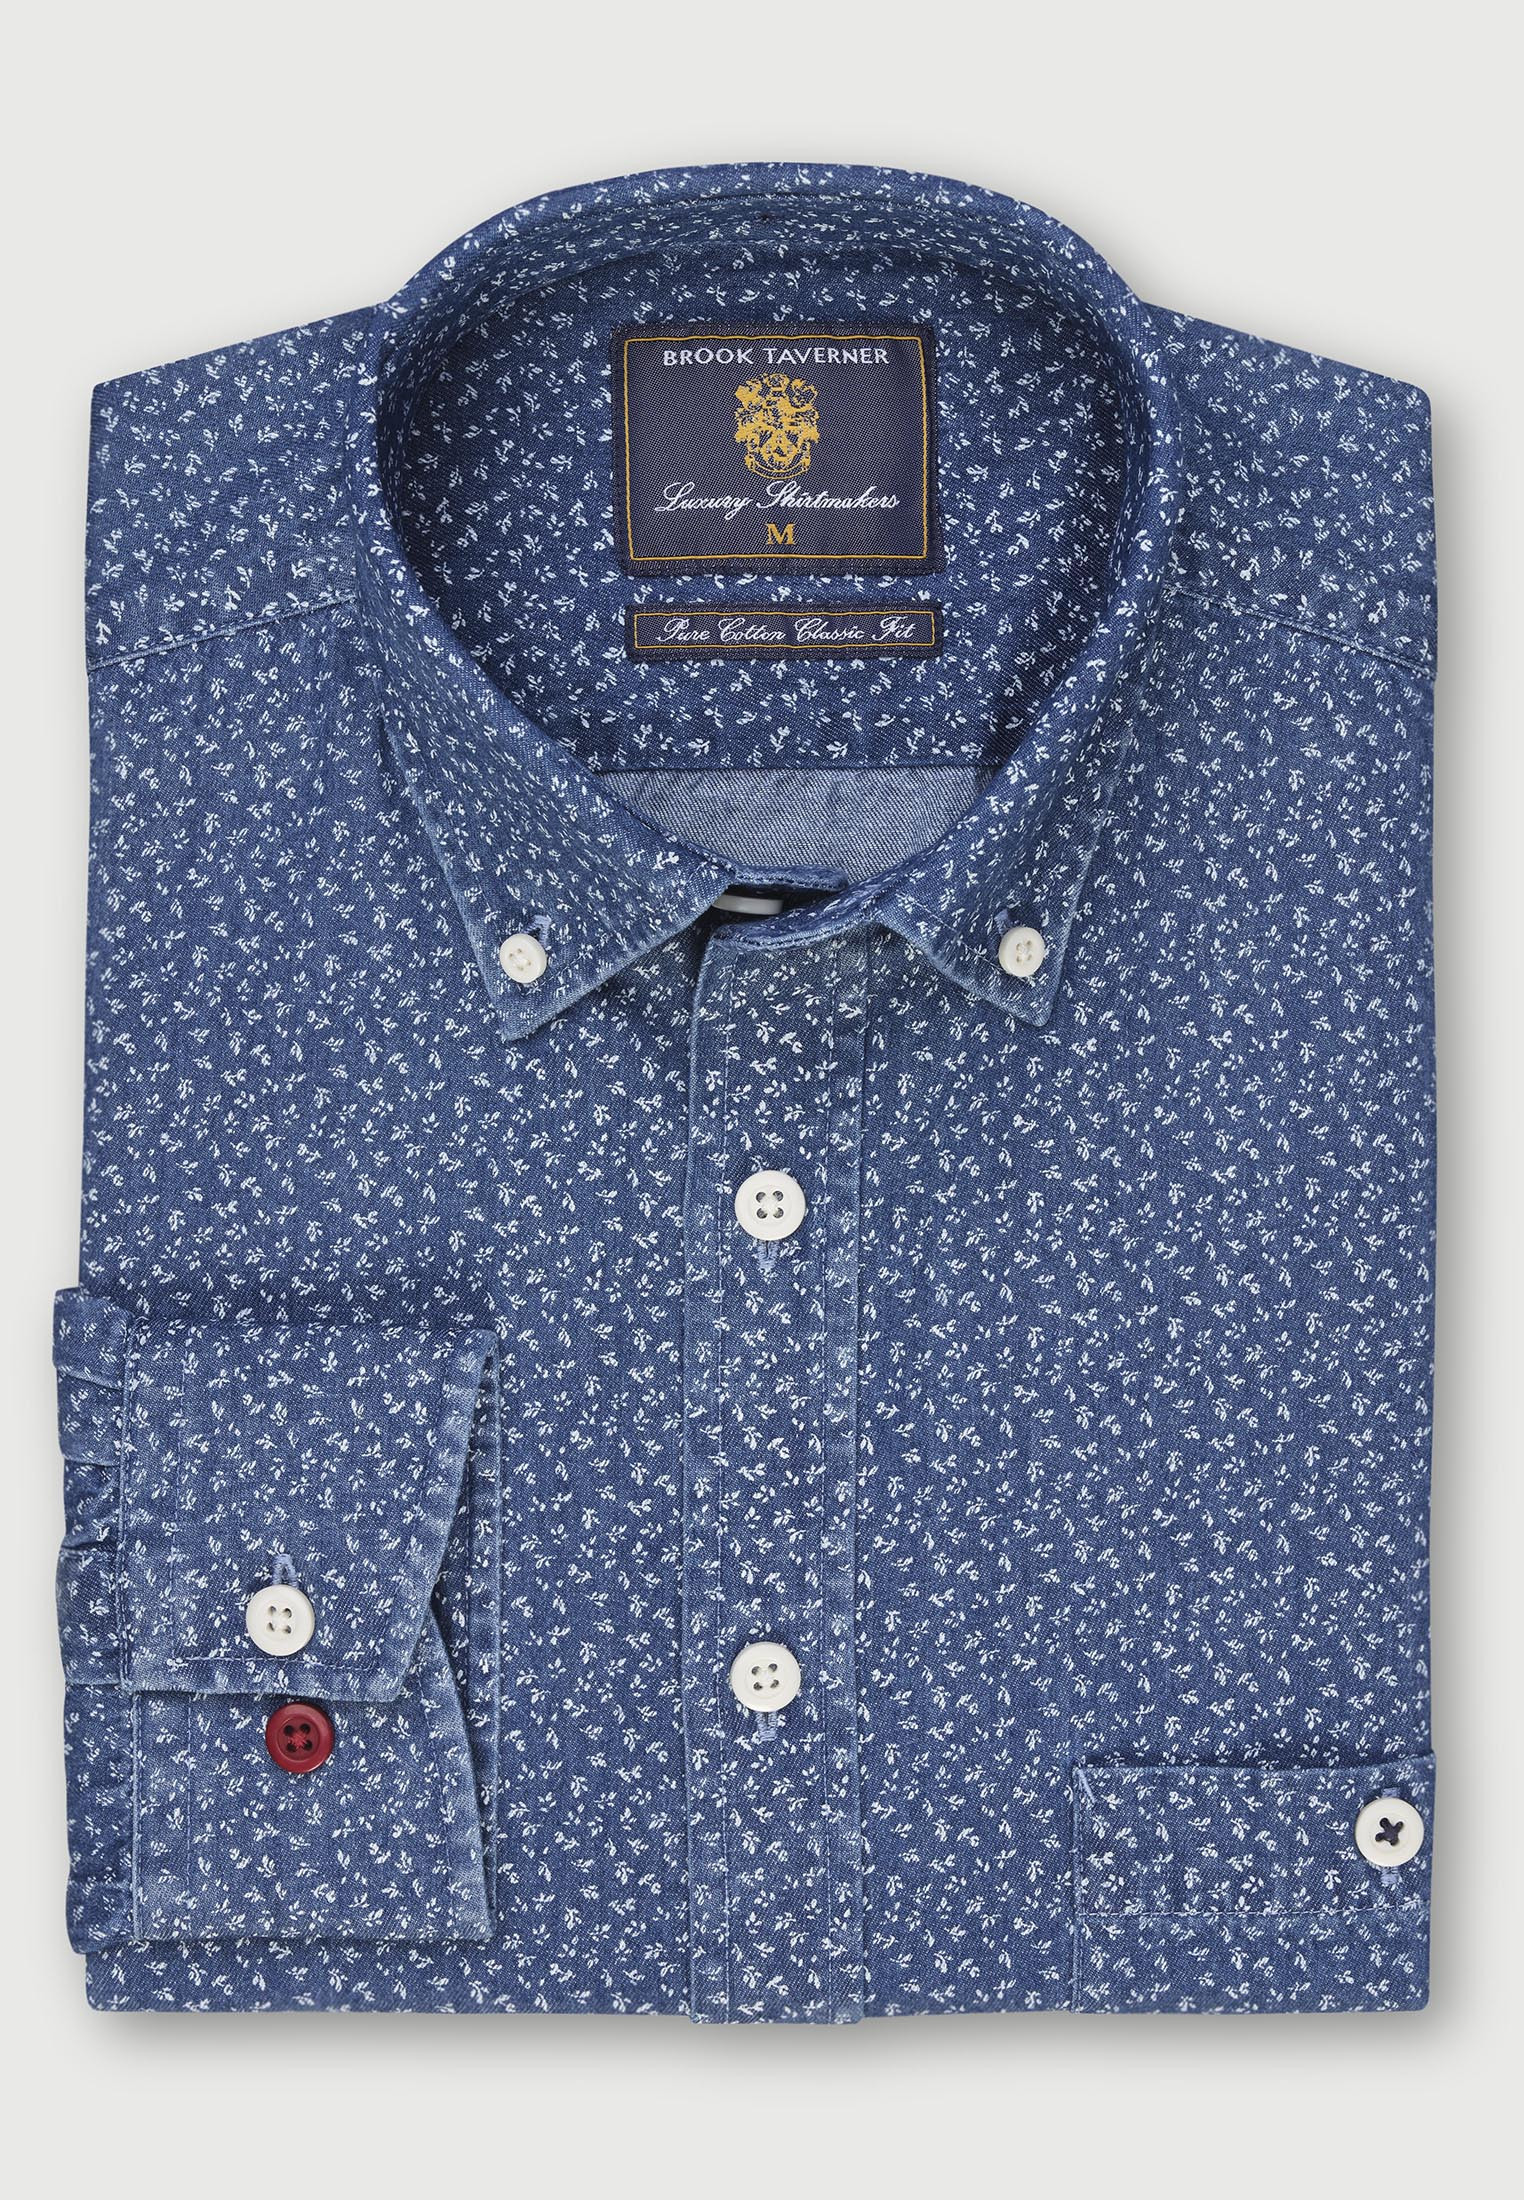 Classic and Tailored Fit Mid Blue with All Over Floral Print 'Super Soft' Chambray Shirt